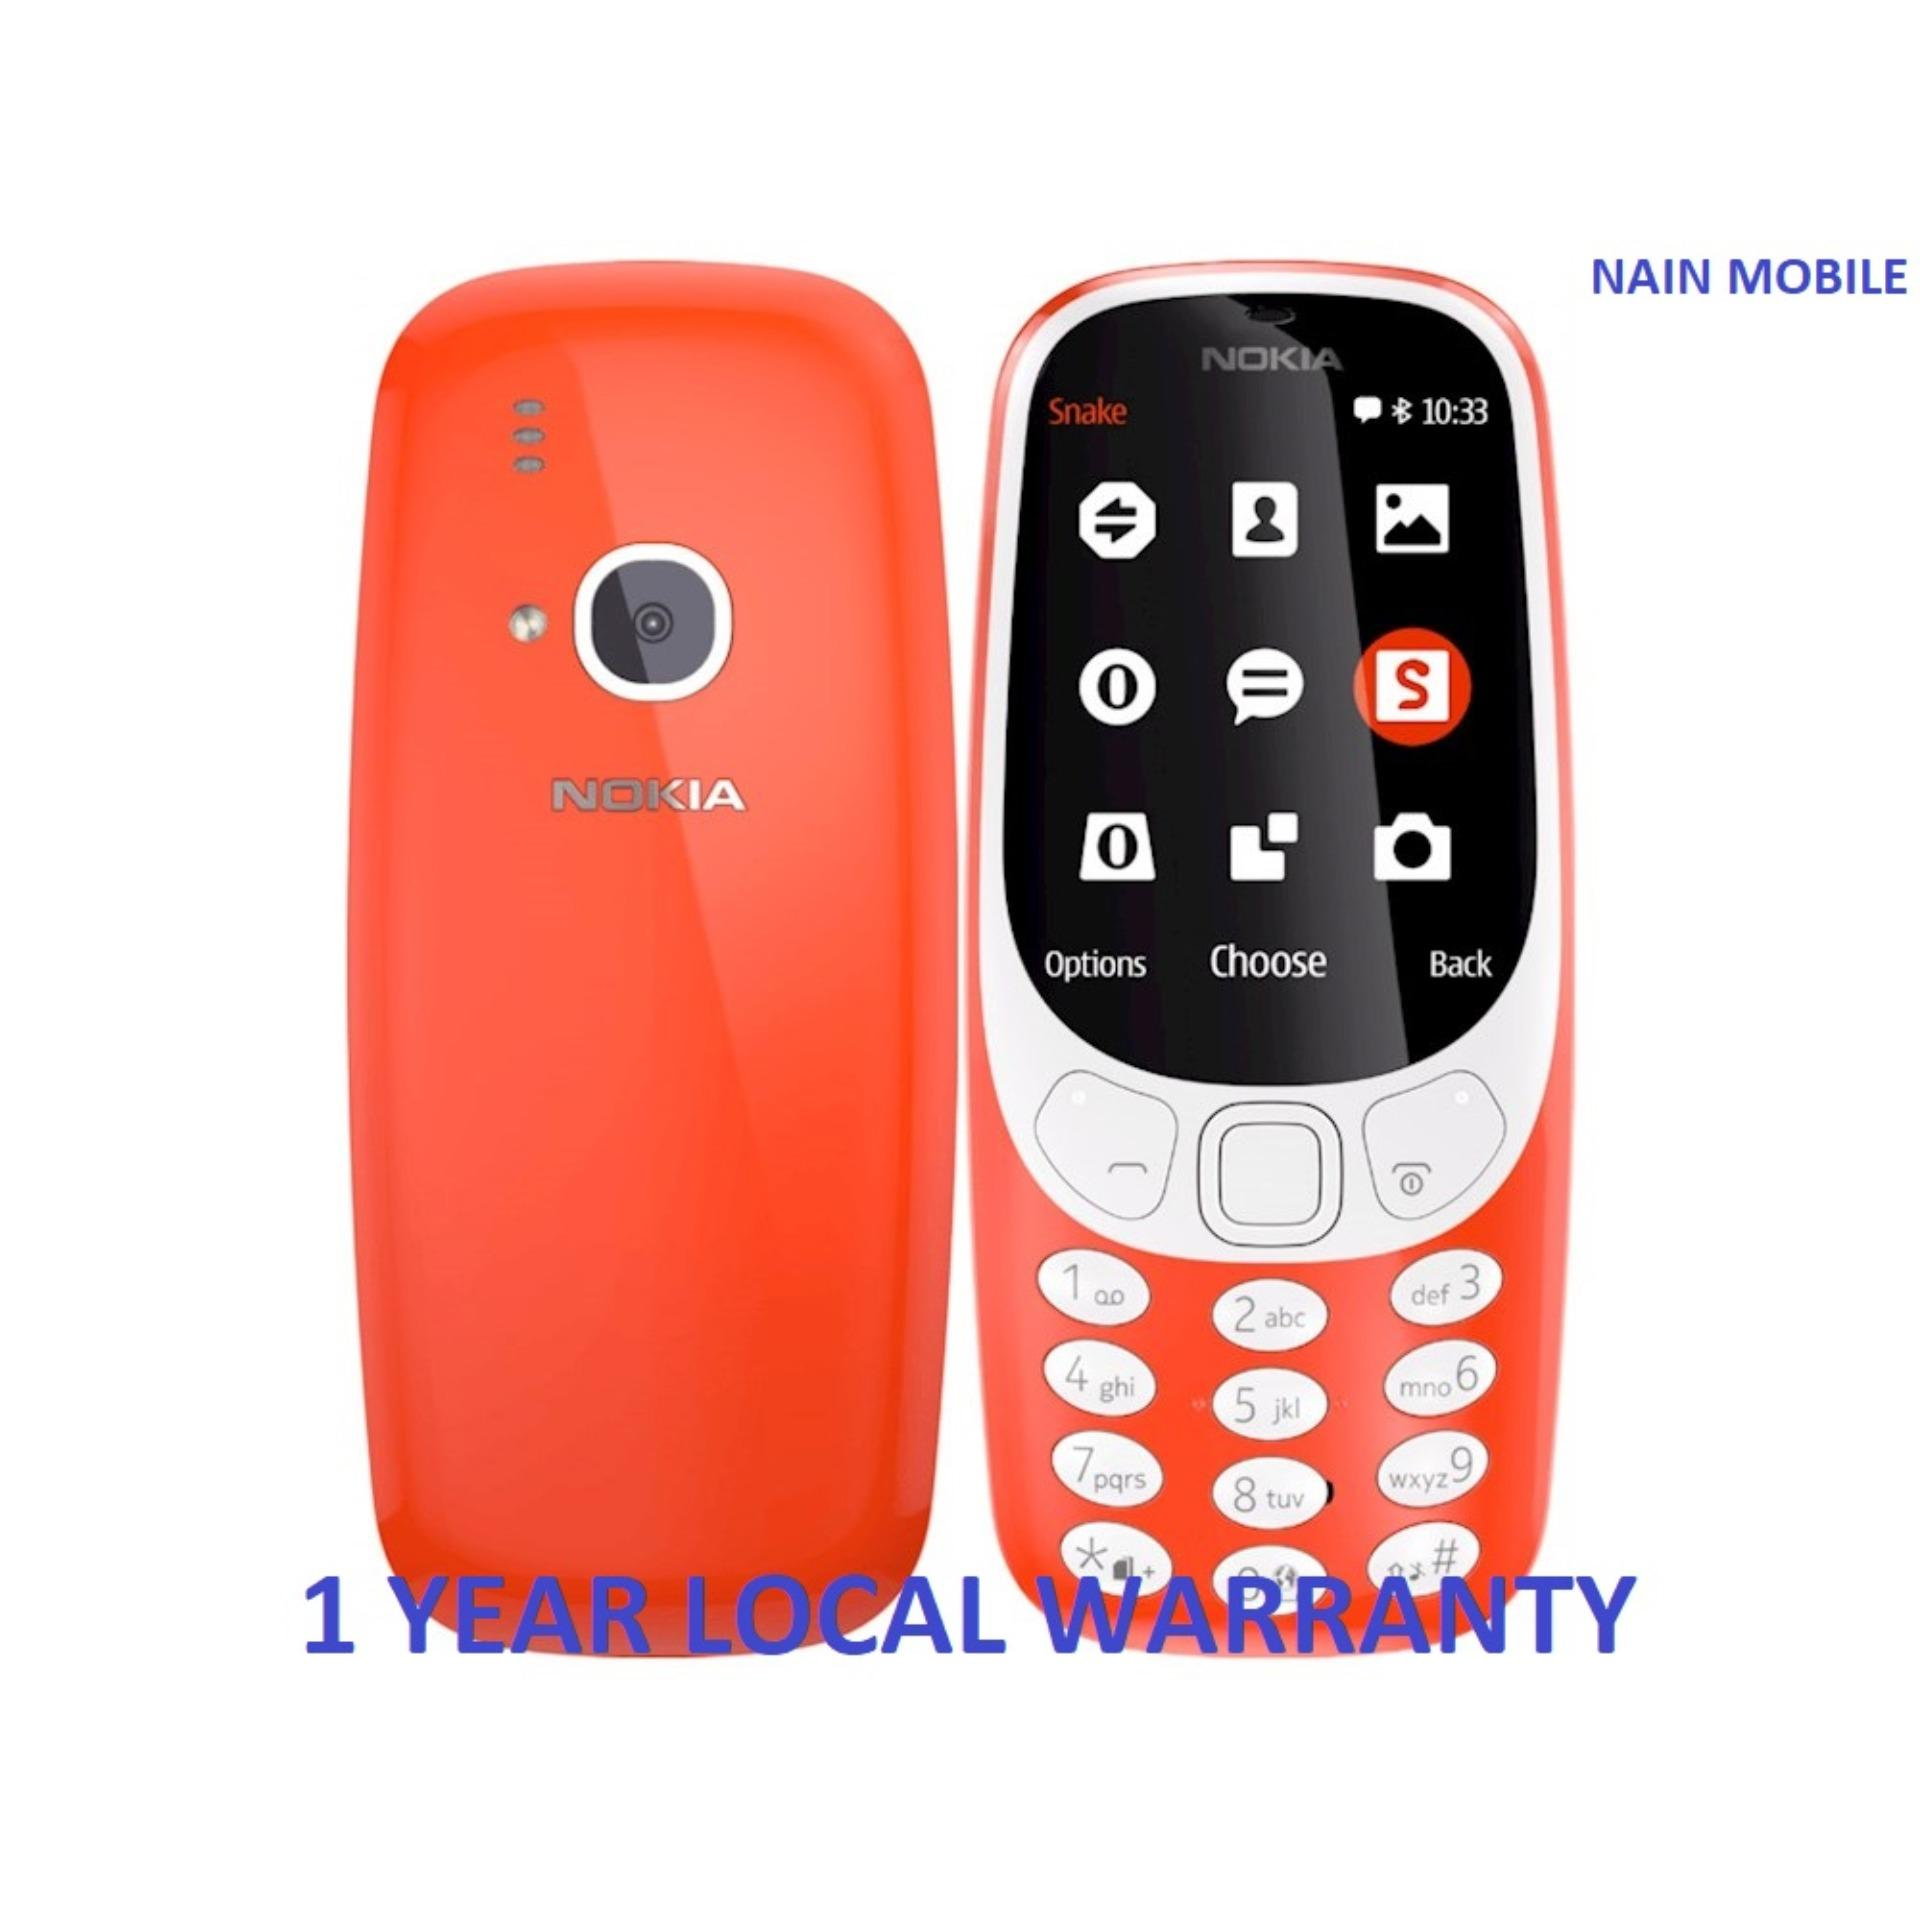 Latest Nokia Mobiles Products Enjoy Huge Discounts Lazada Sg Lumia 520 8gb Red